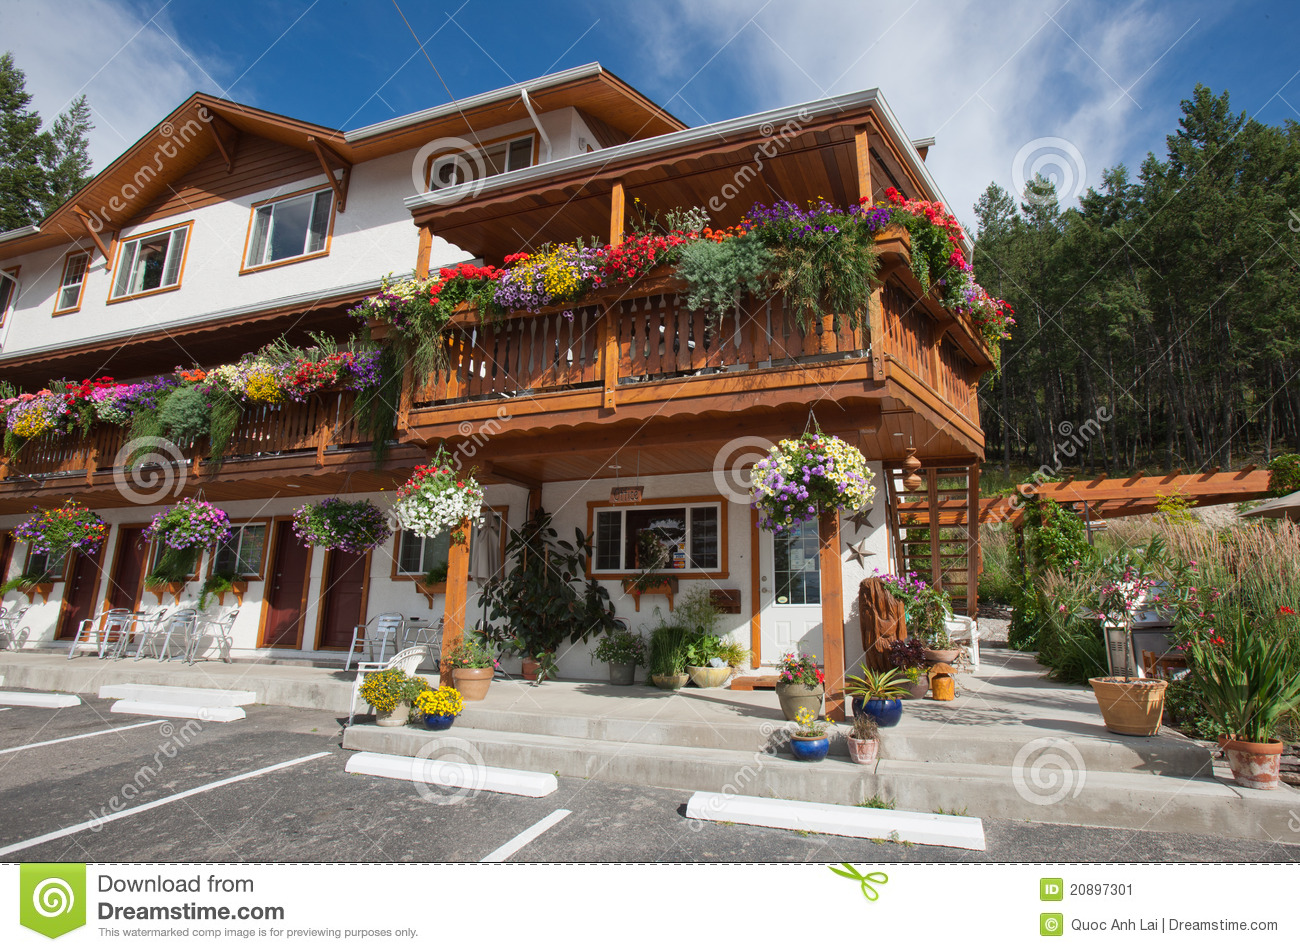 Motels In Kootenay National Park Stock Image - Image: 20897301